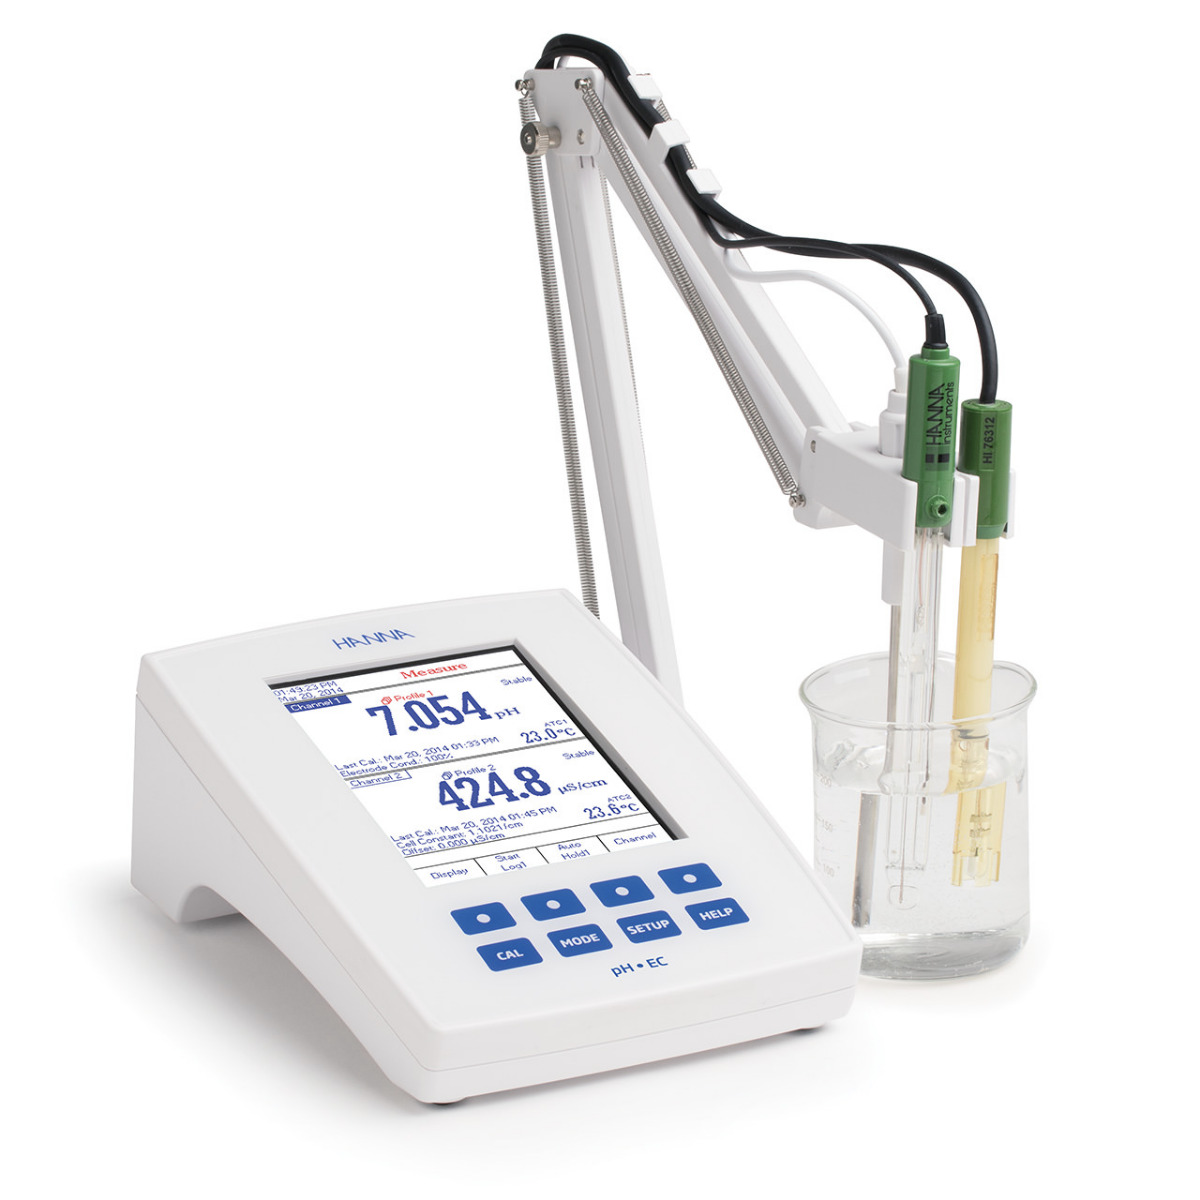 Laboratory Research Grade Benchtop pH/mV and EC/TDS/Salinity/Resistivity Meter - HI5521